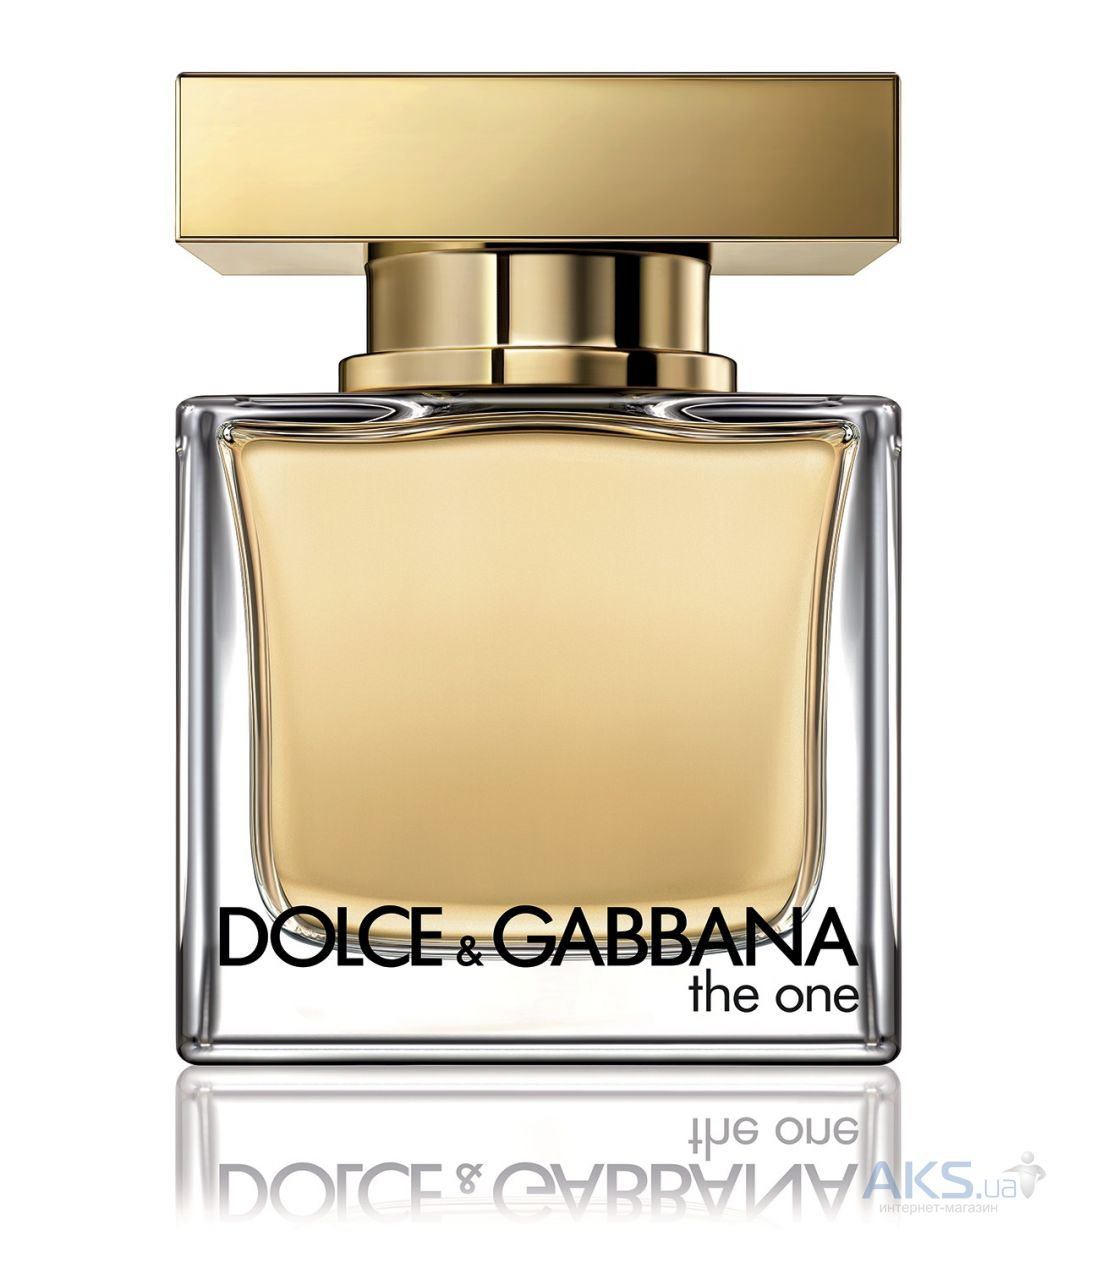 Dolce&Gabbana The One Eau de Toilette Туалетная вода 50 ml - фото 2